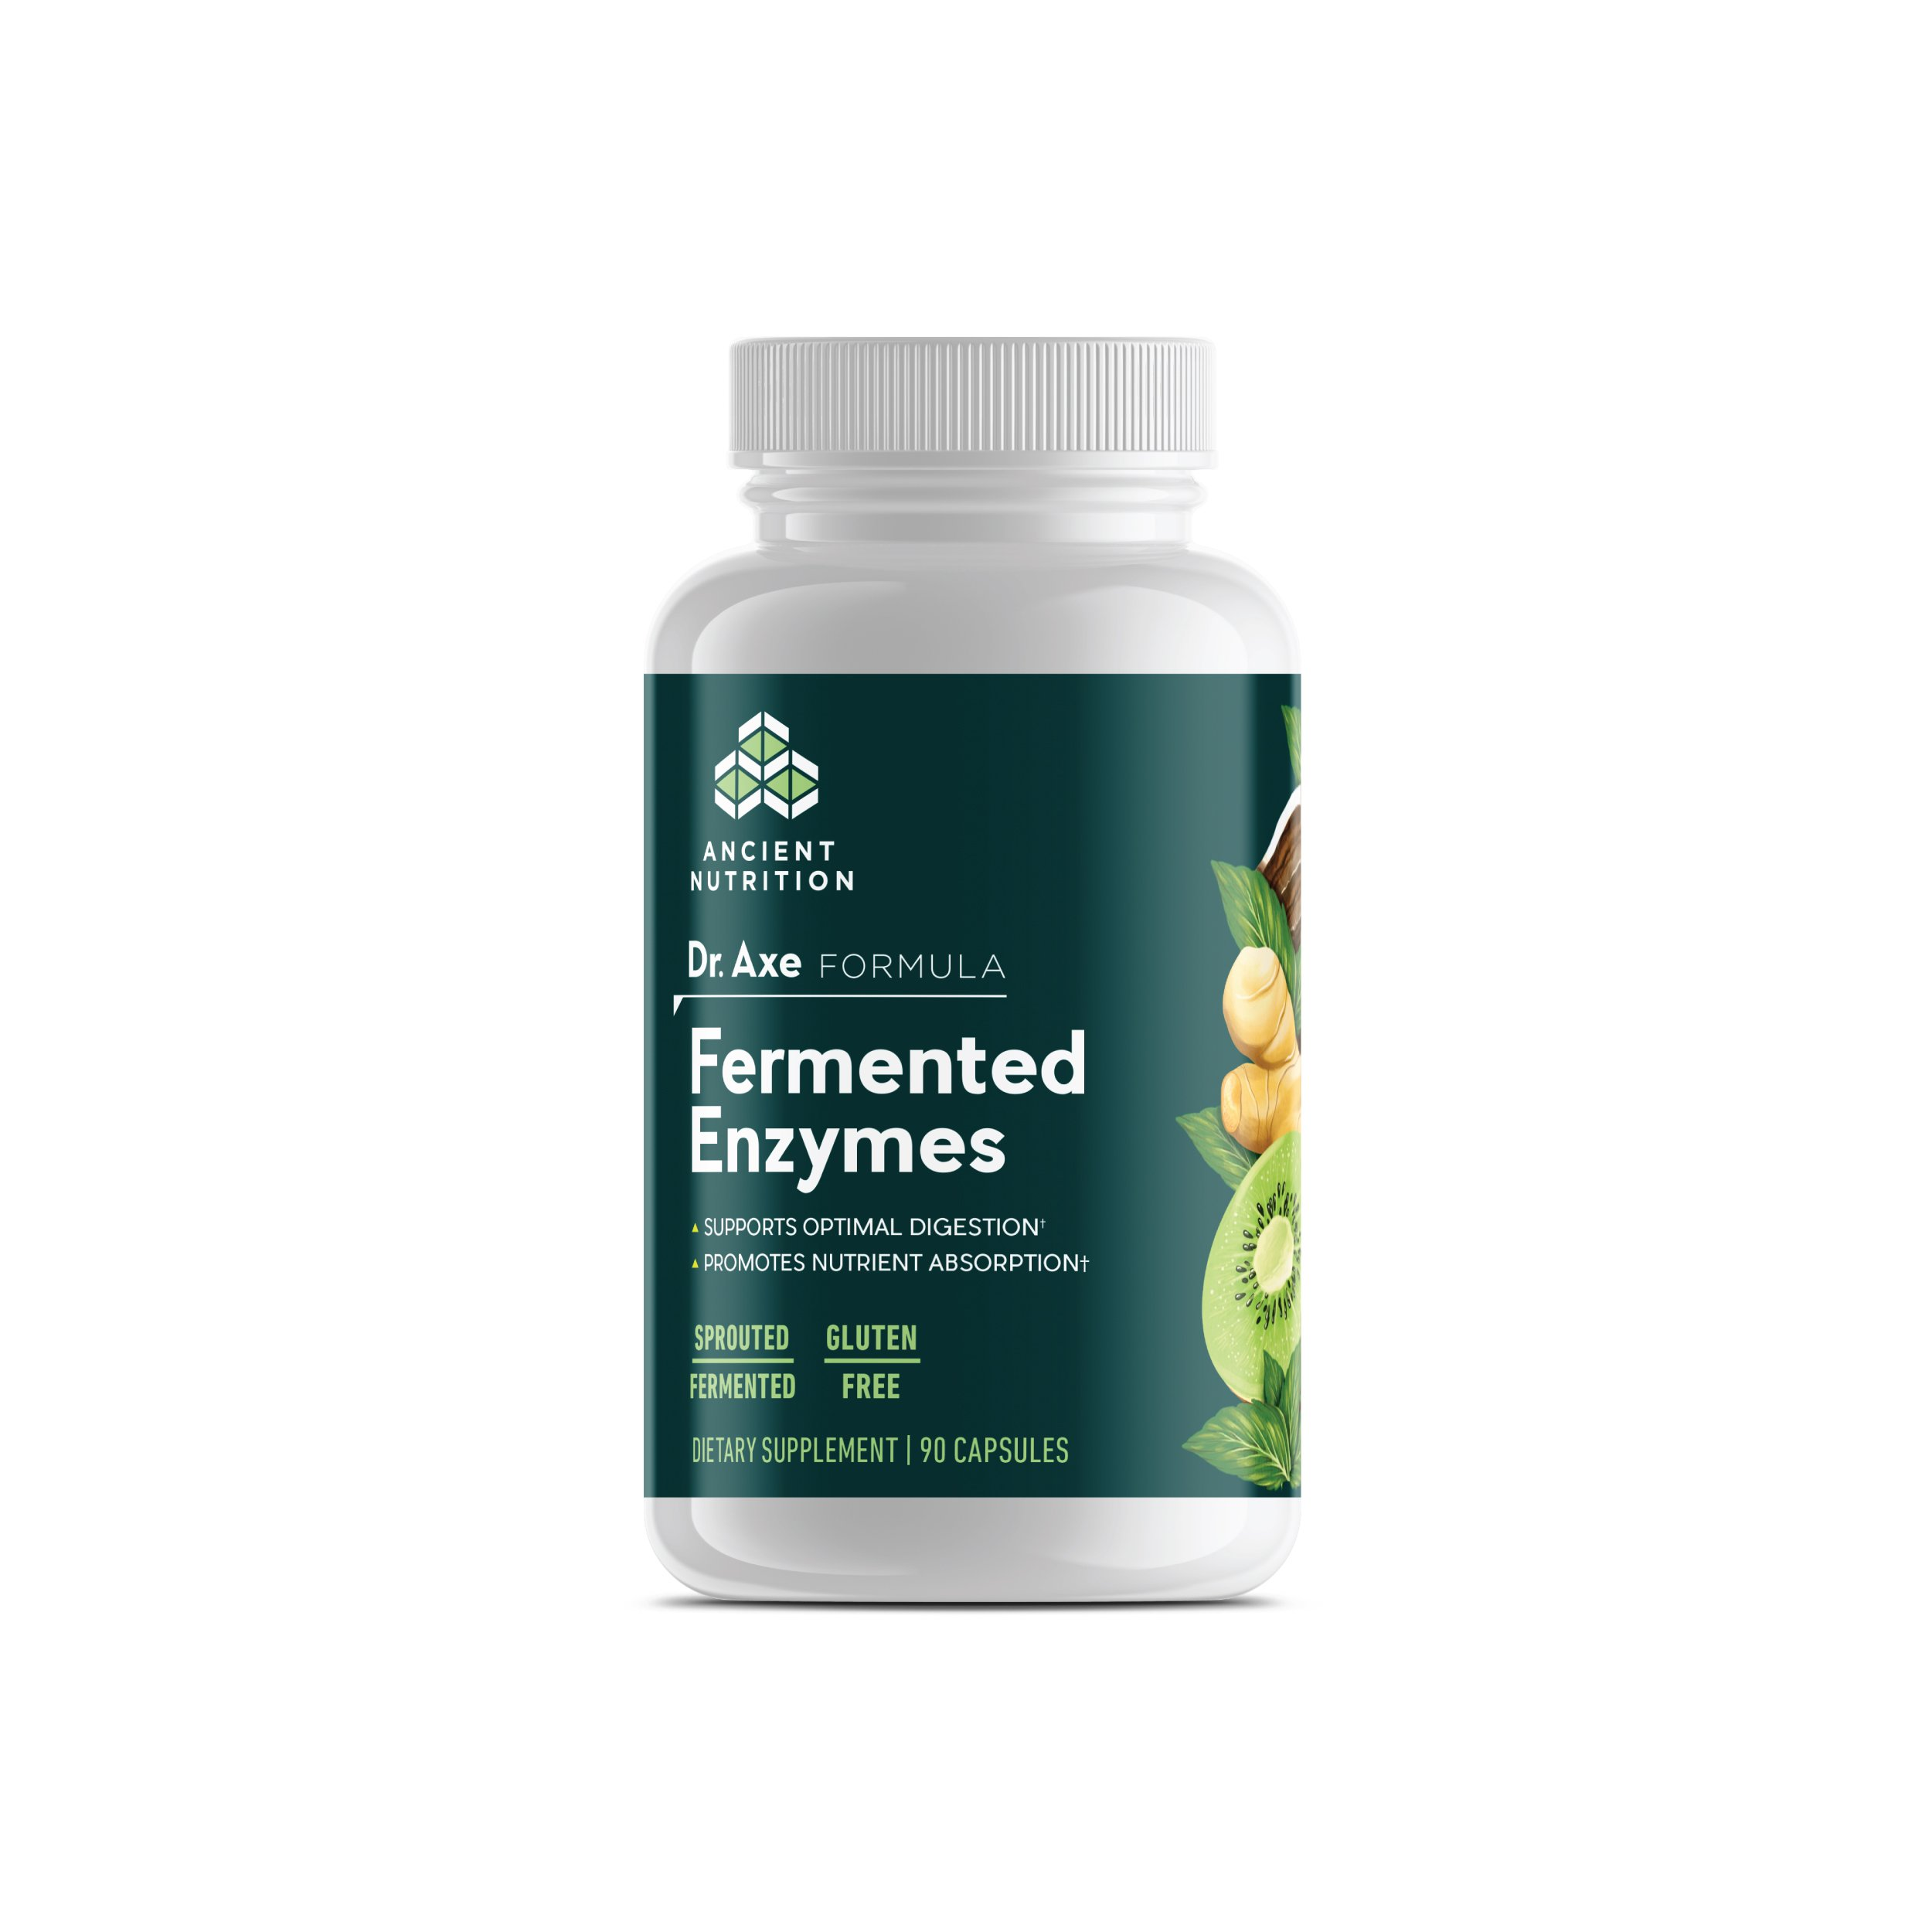 Ancient Nutrition Fermented Enzymes, 90 Capsules — with Enzymes and Probiotics to Support Overall Digestive Health — Dr. Axe Formula